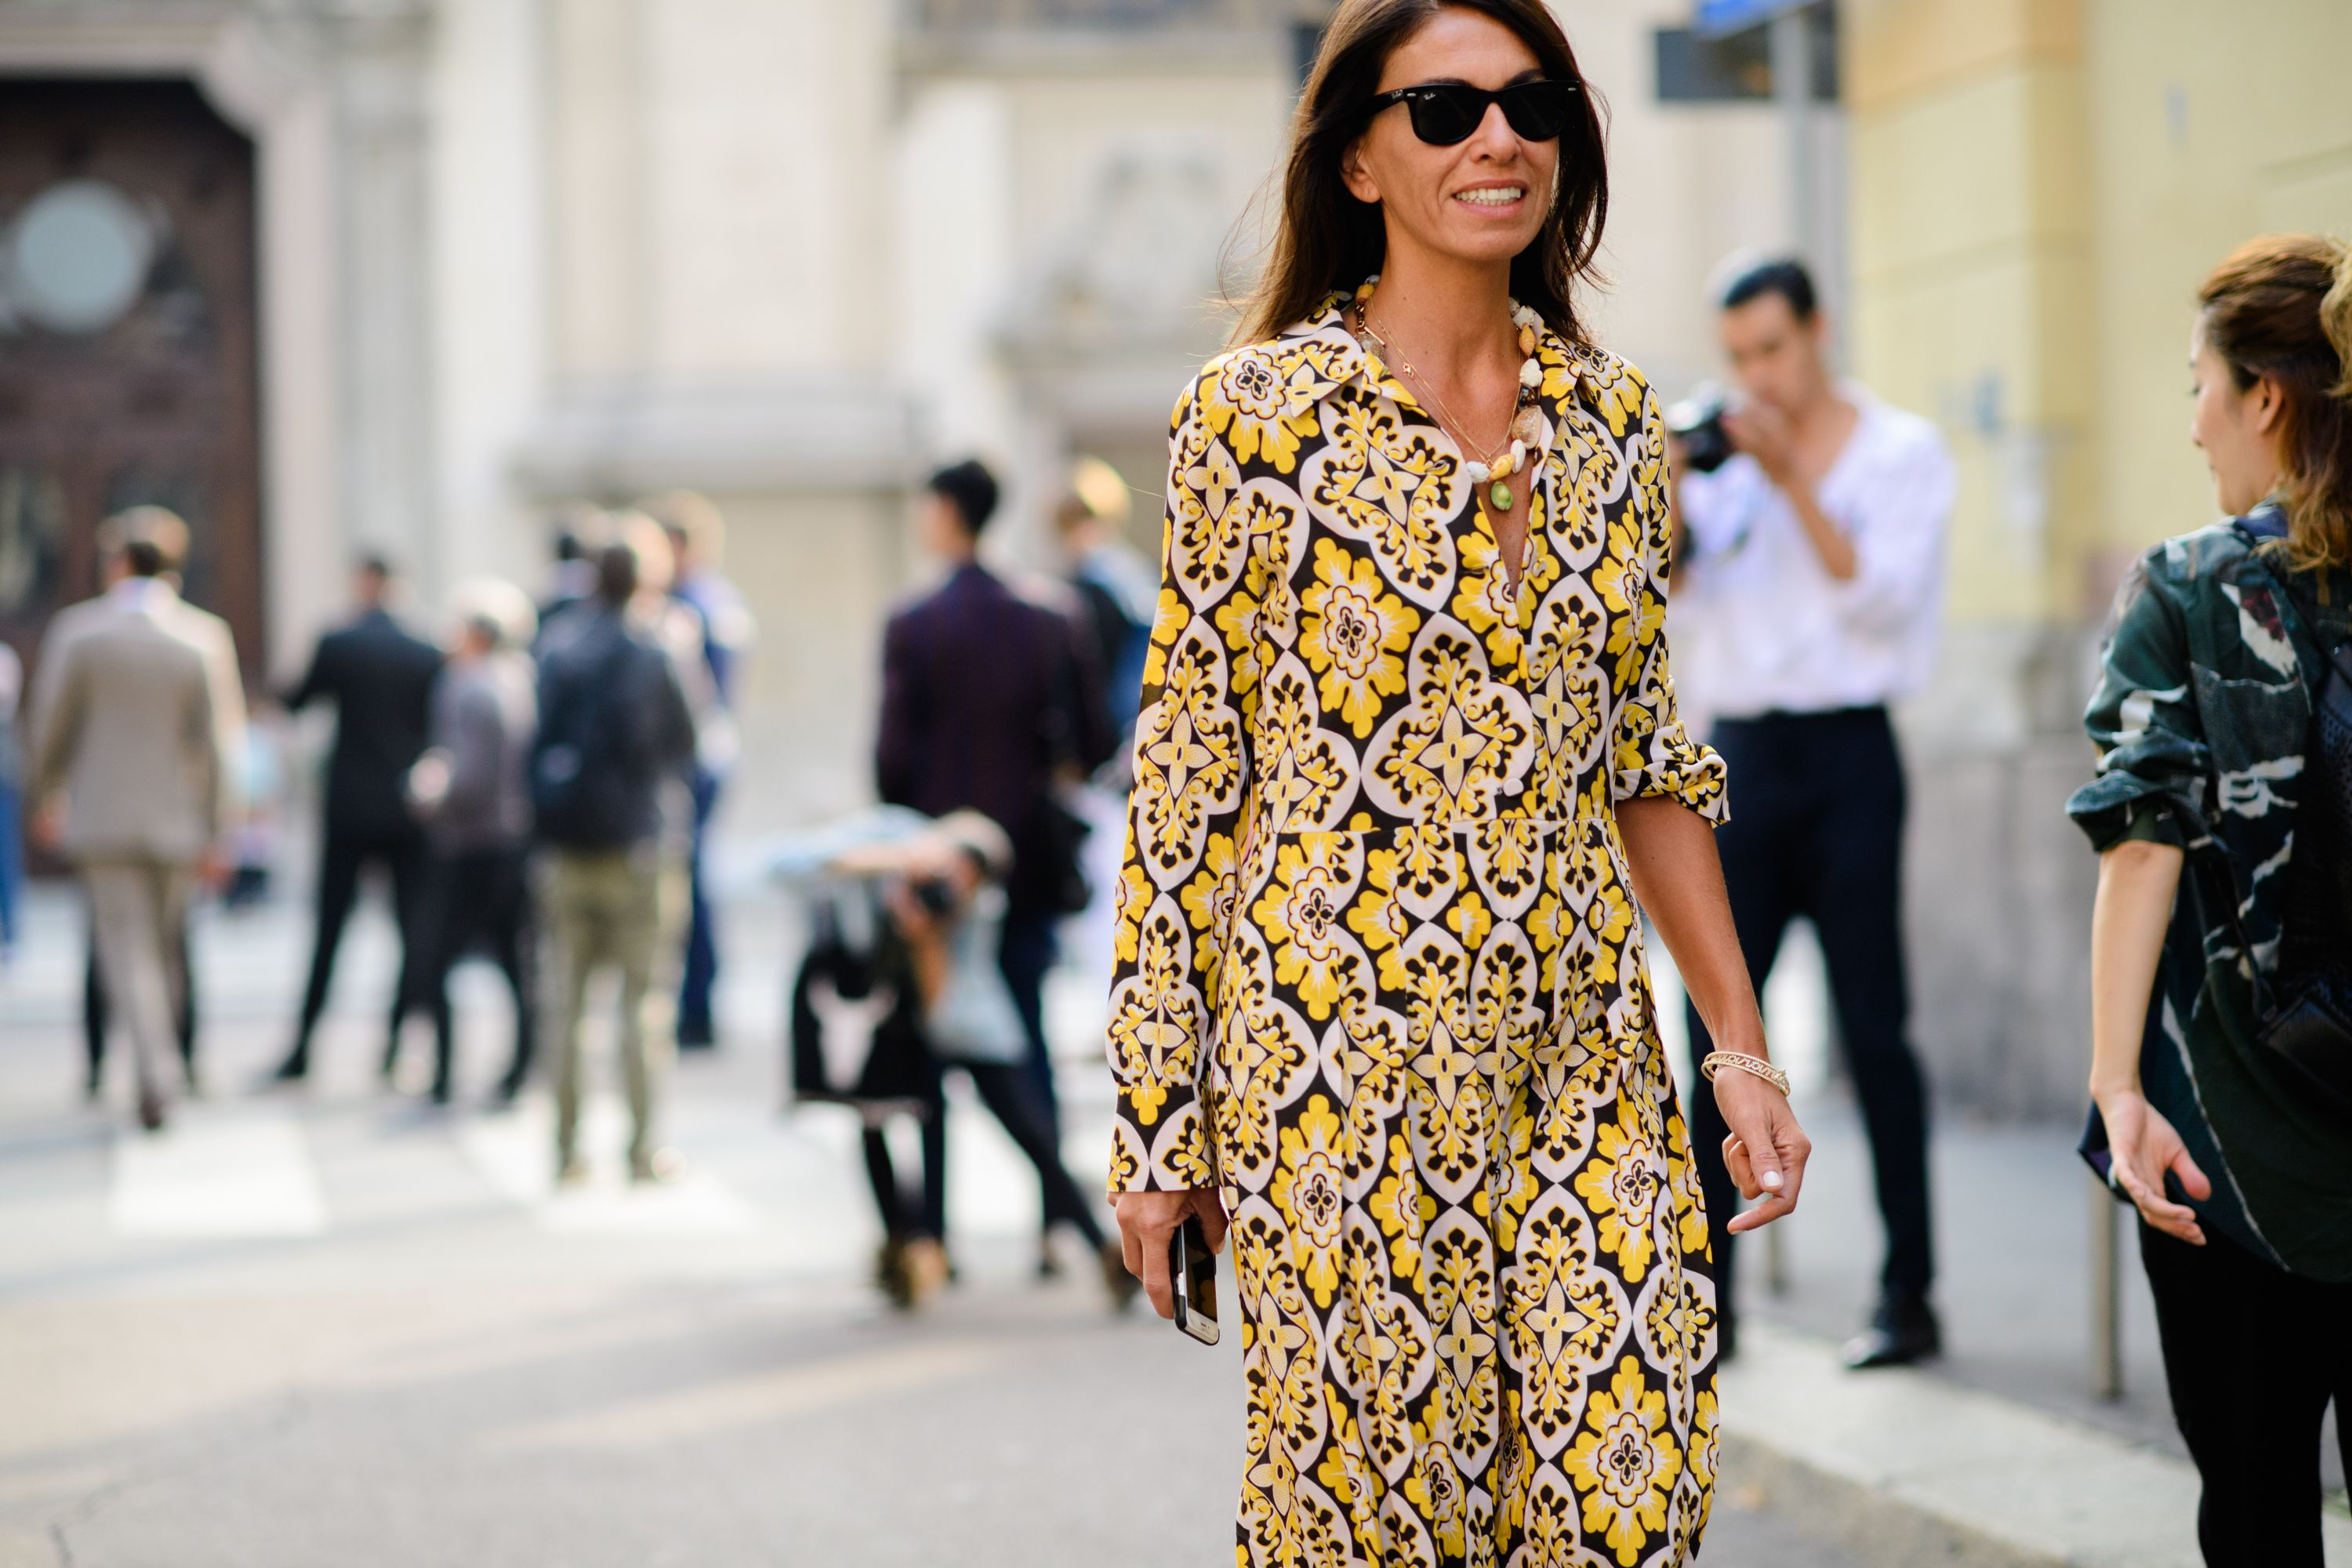 847702c2d033 Milan Fashion Week Spring 2018 Street Style - Style Photos from Milan  Fashion Week